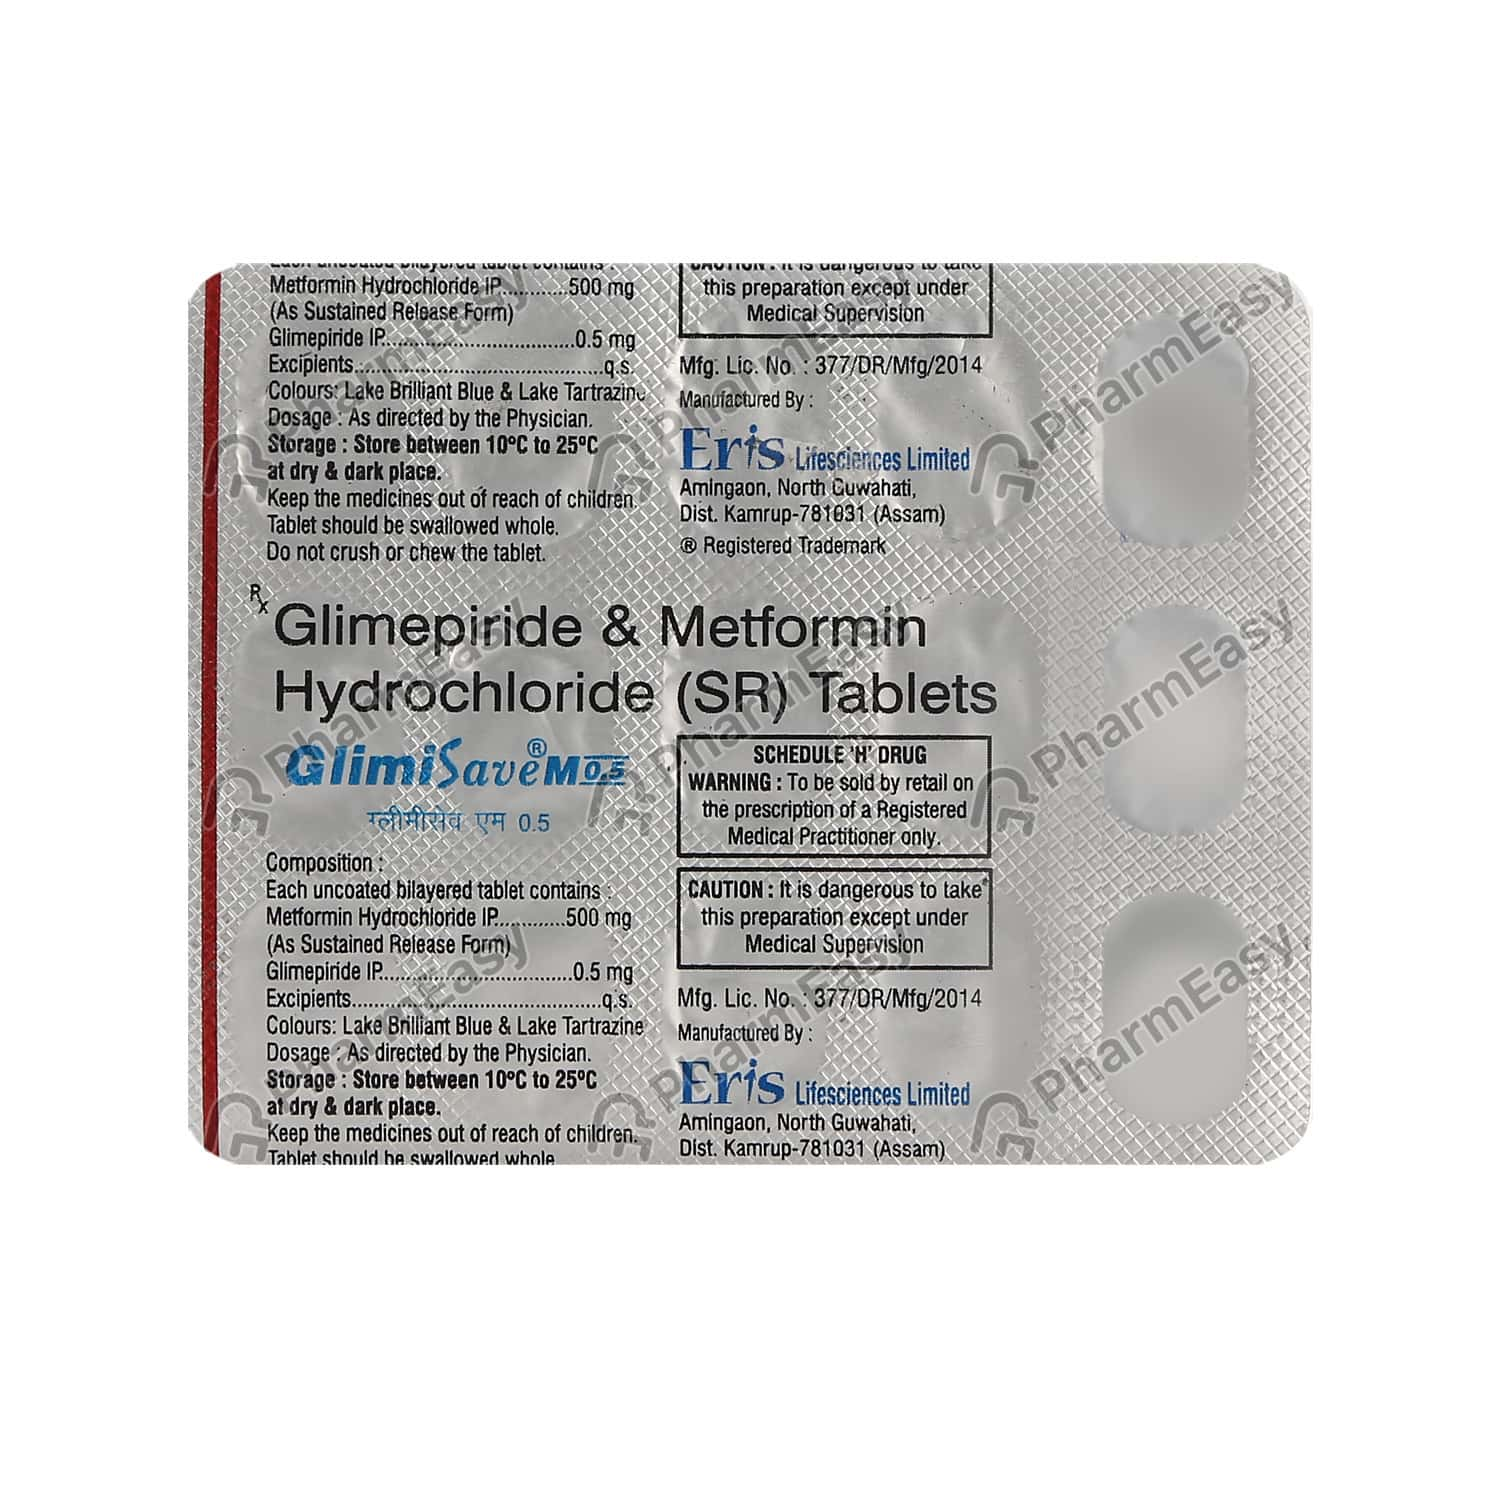 Glimisave M 0.5mg Strip Of 15 Tablets